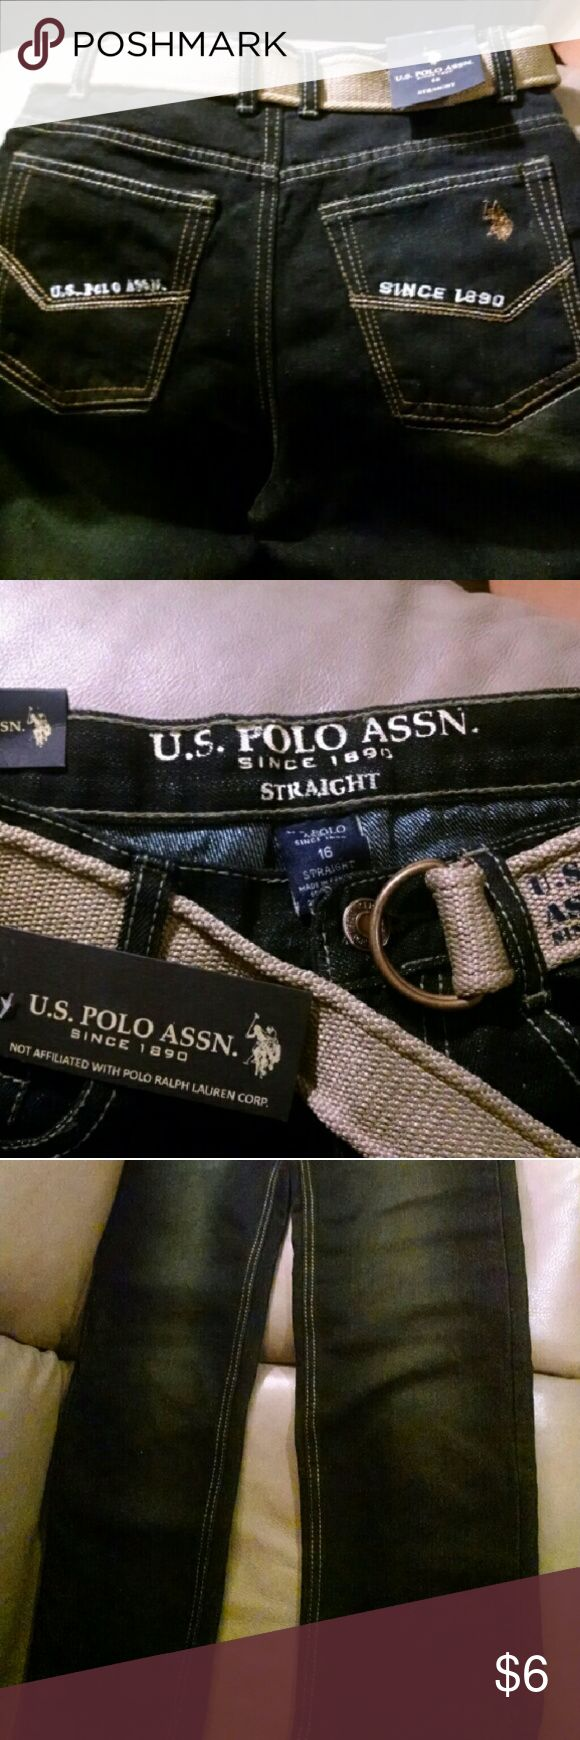 Boys Polo Jeans w/ belt NWT - needs zipper repair Brand new boys jeans by U.S. Polo Association with belt. Still has all tags.Broken zipper, see pics. U.S. Polo Assn. Bottoms Jeans